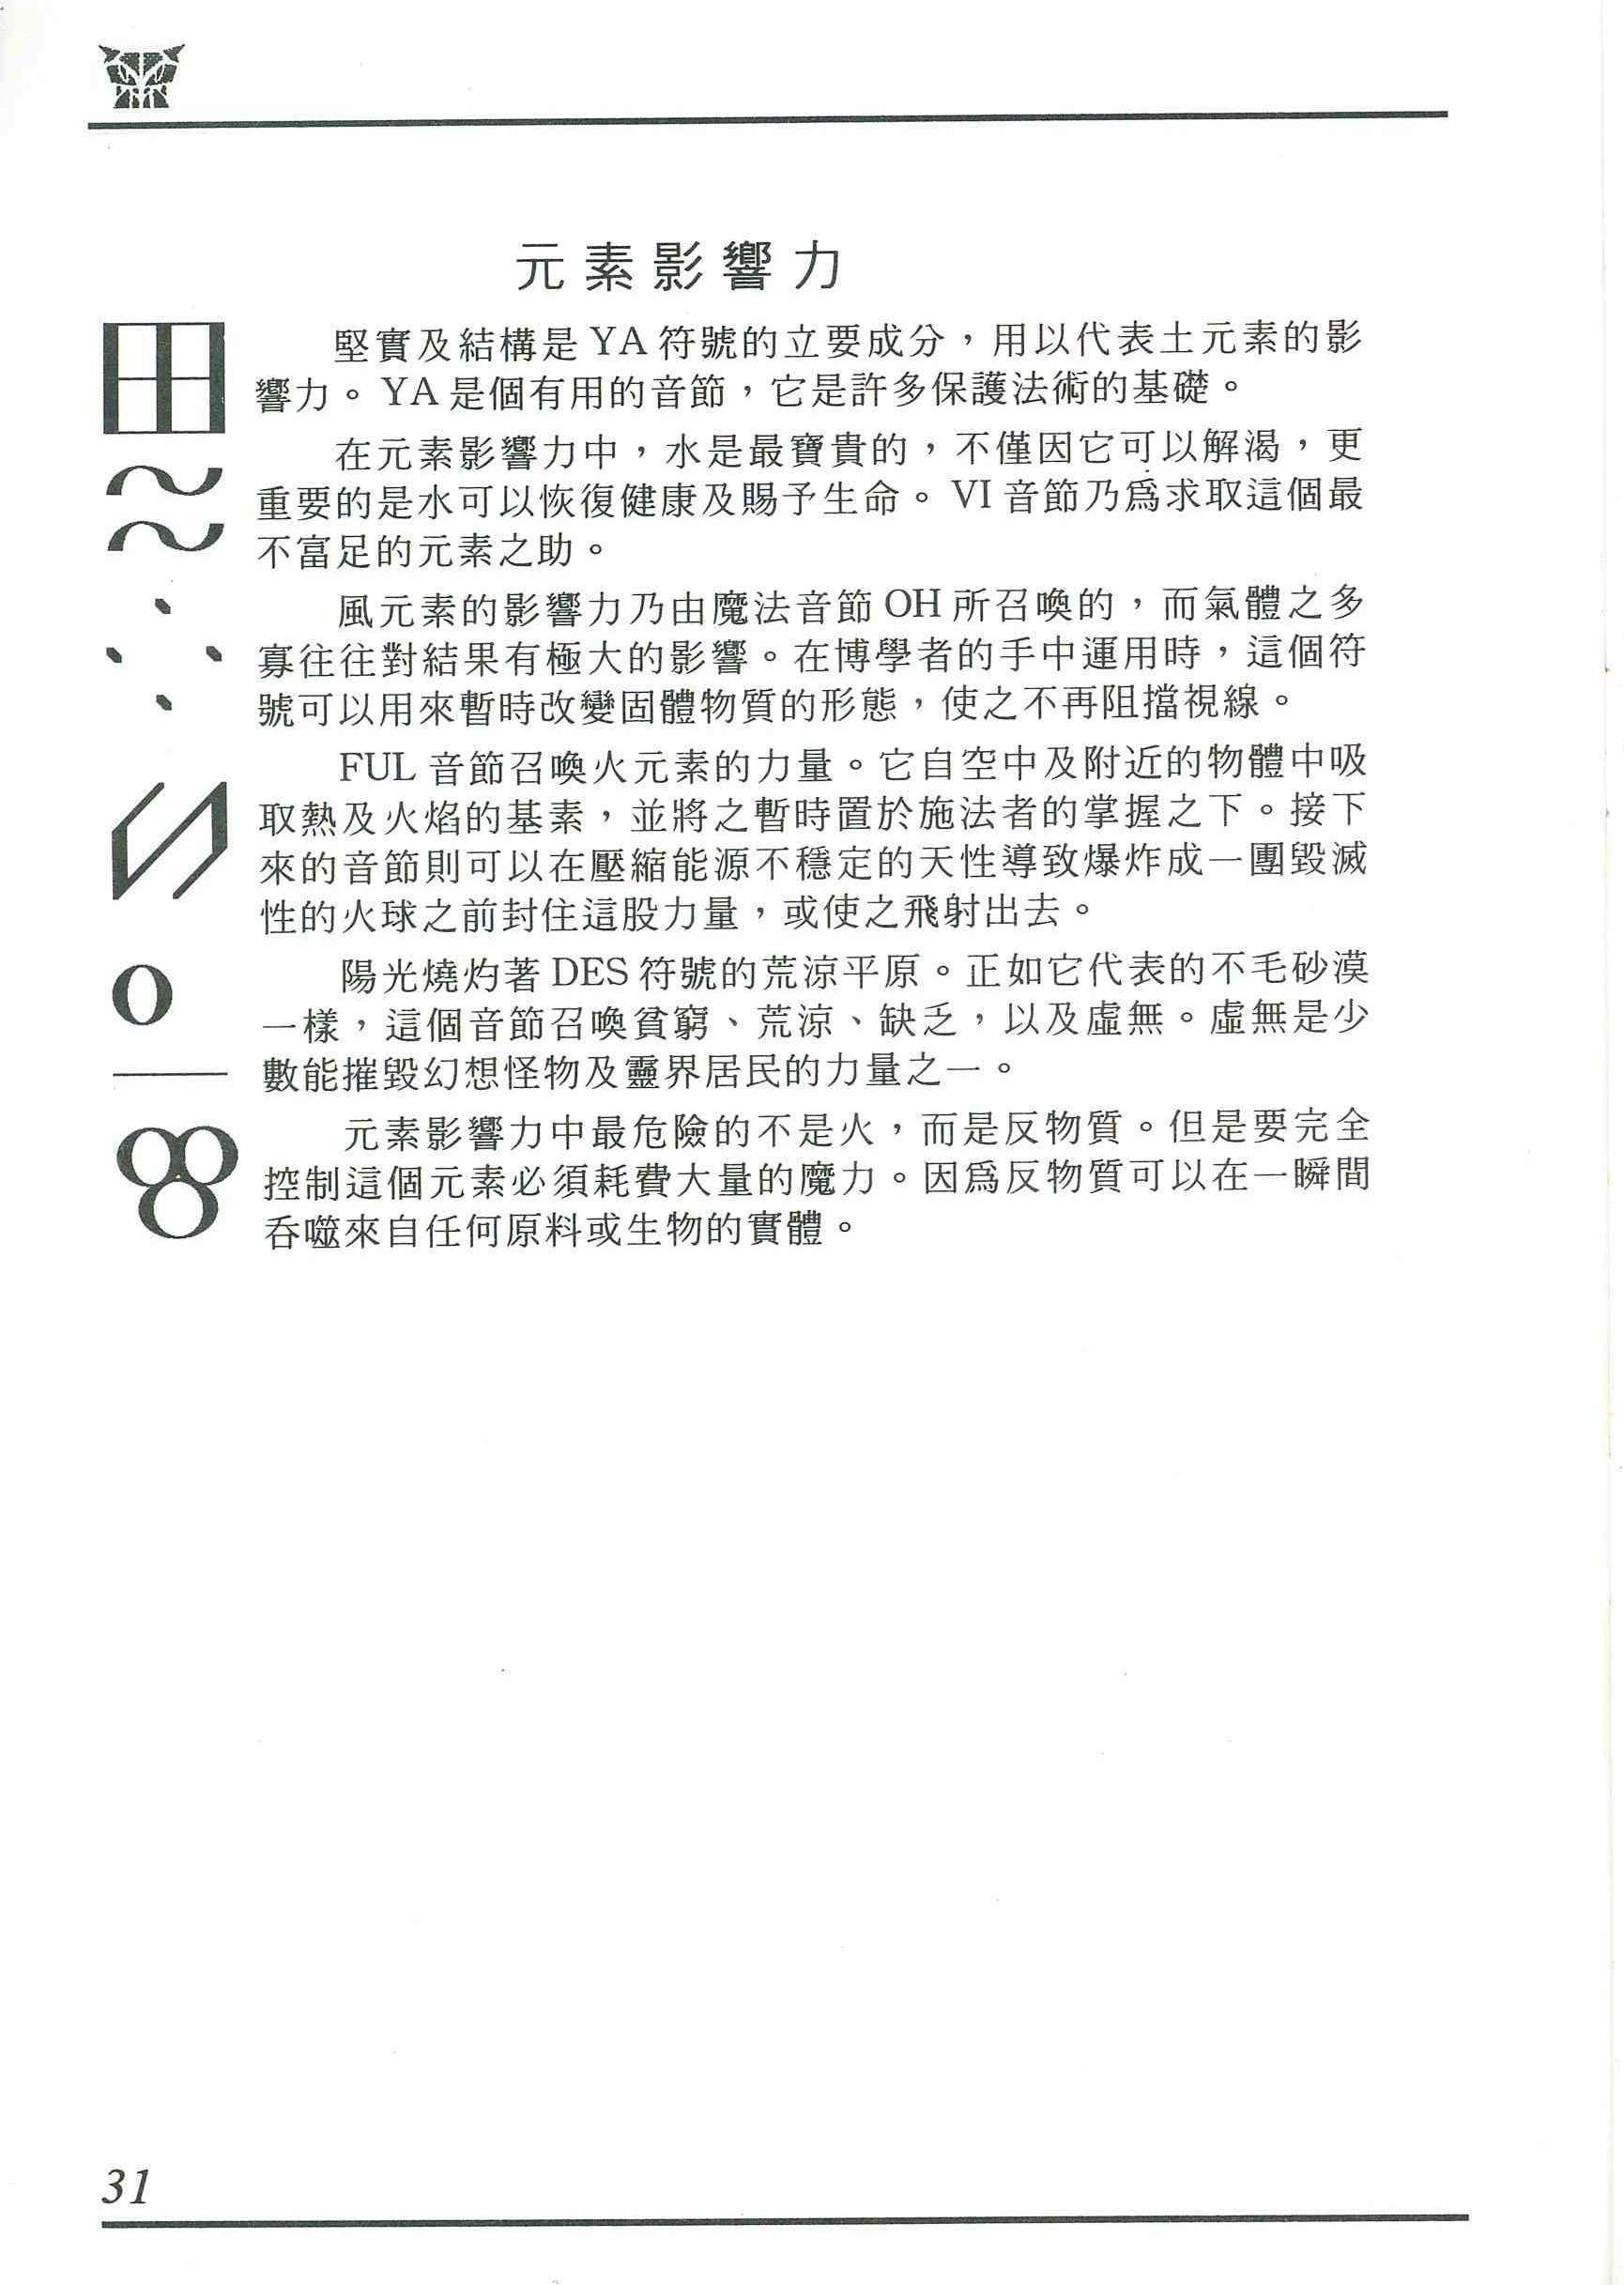 Game - Dungeon Master - CN - PC - Manual - Page 038 - Scan